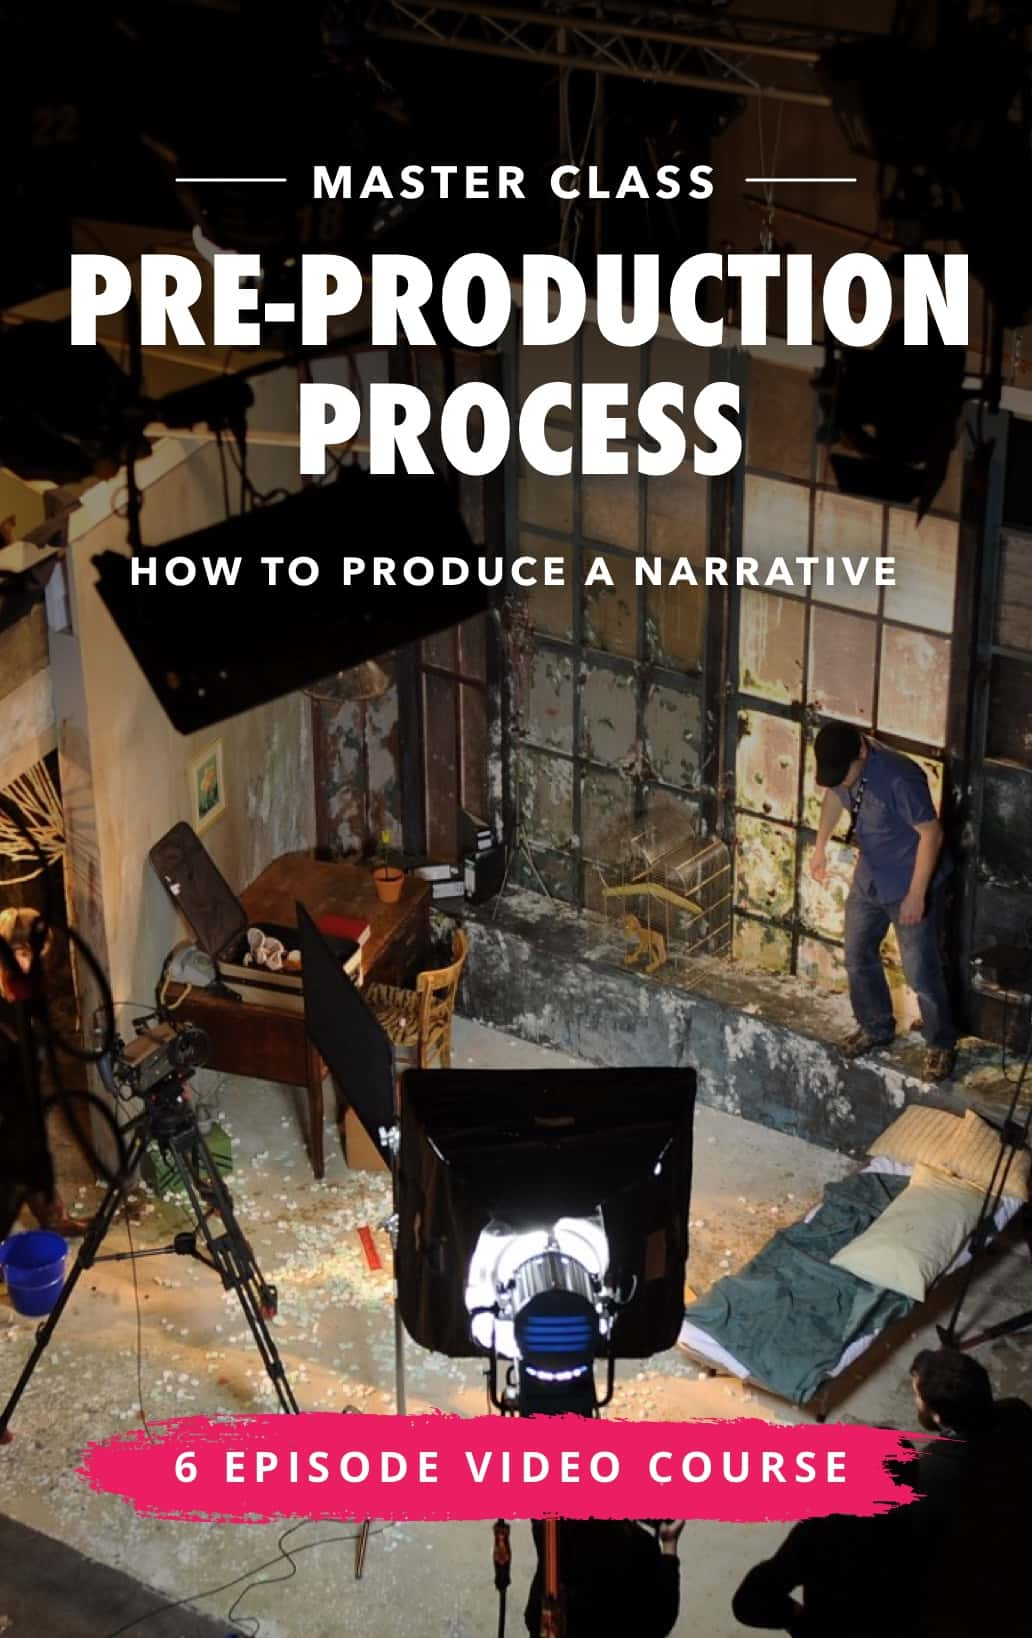 Producing E-Course - The Pre Production Process Explained - StudioBinder